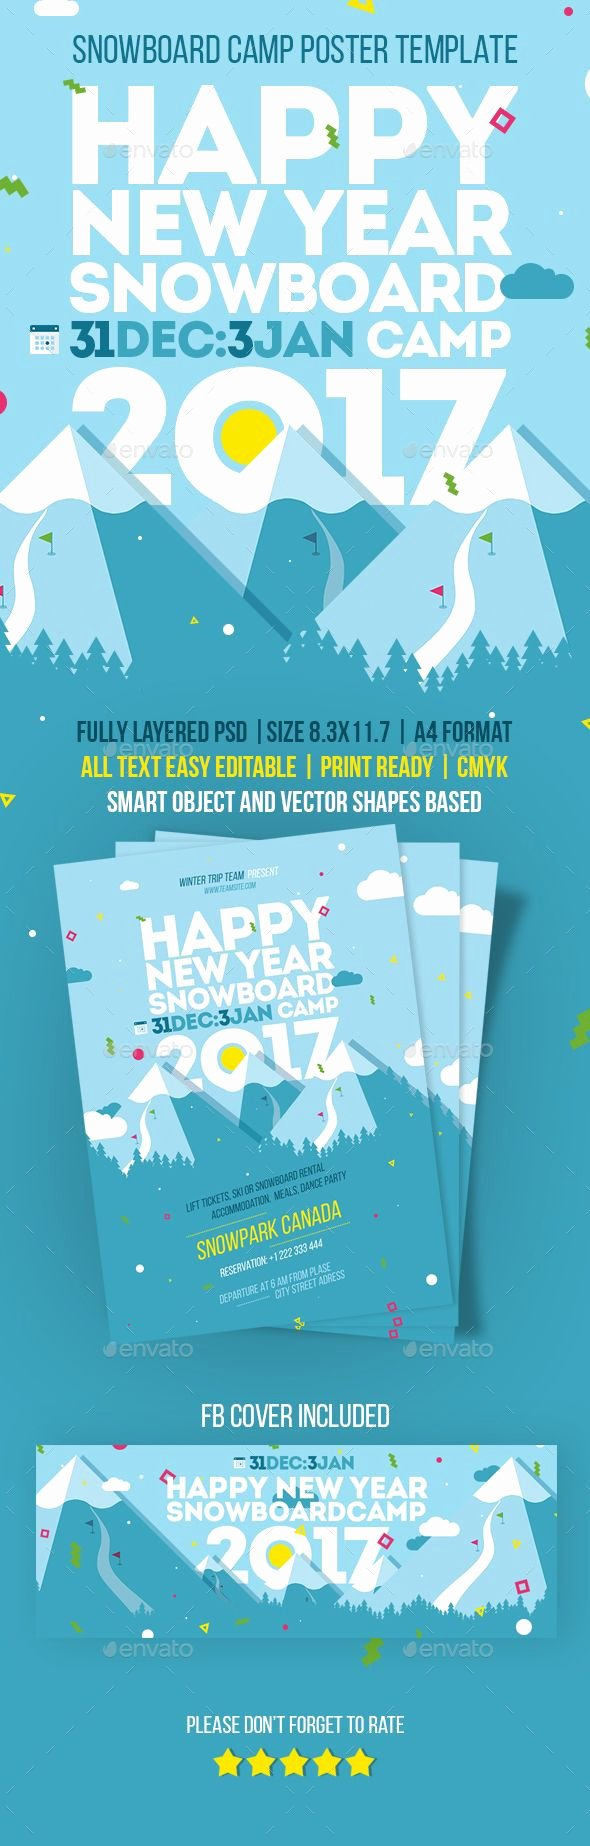 Playbill Template Photoshop Lovely 17 Best Ideas About Poster Templates On Pinterest